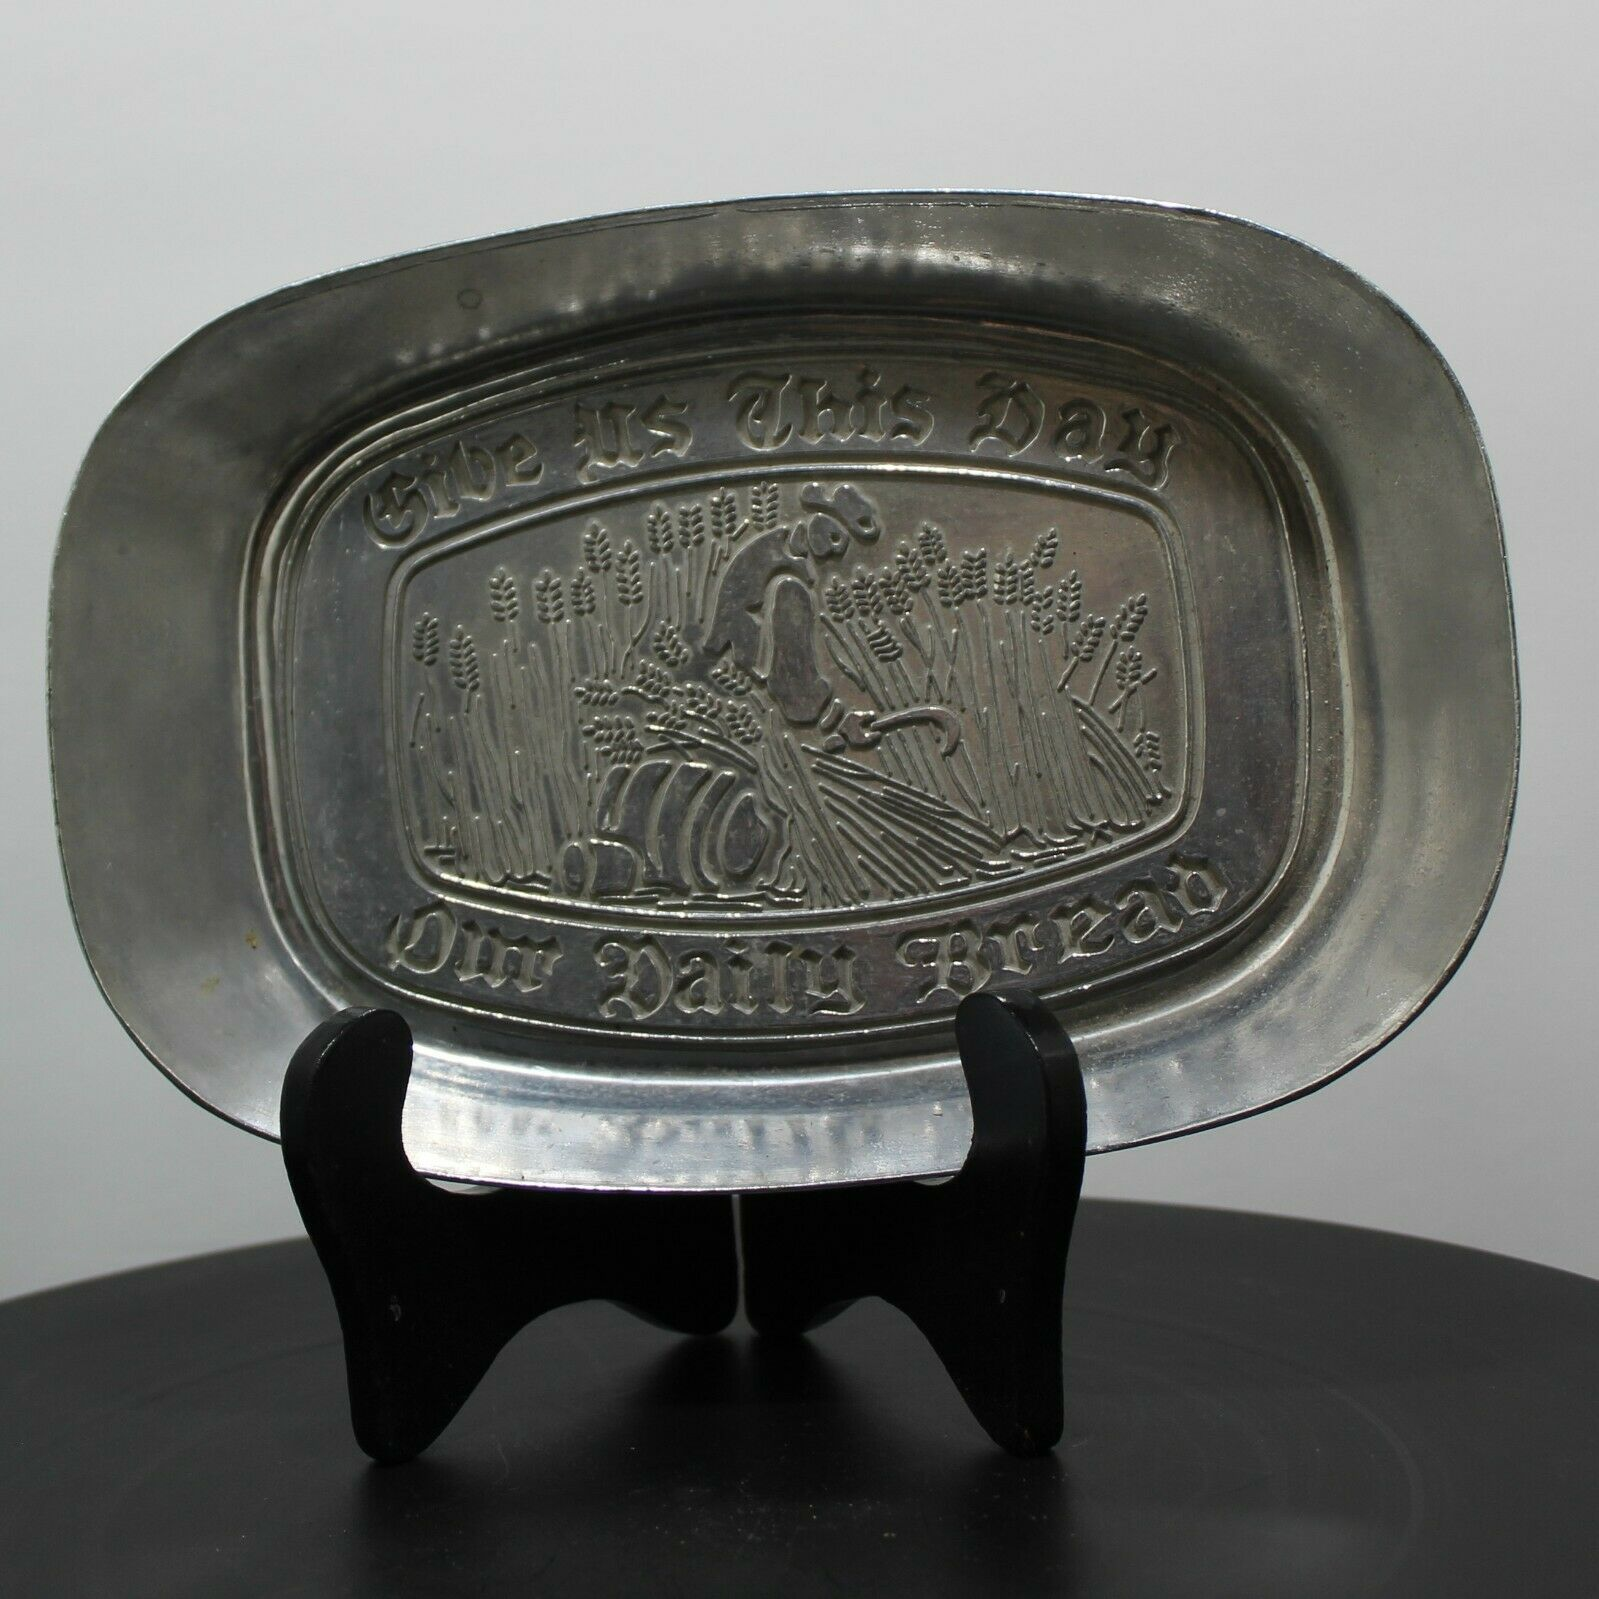 Primary image for Wilton Armetale Pewter Bread Tray Matthew 6:11 Give us this day our daily bread